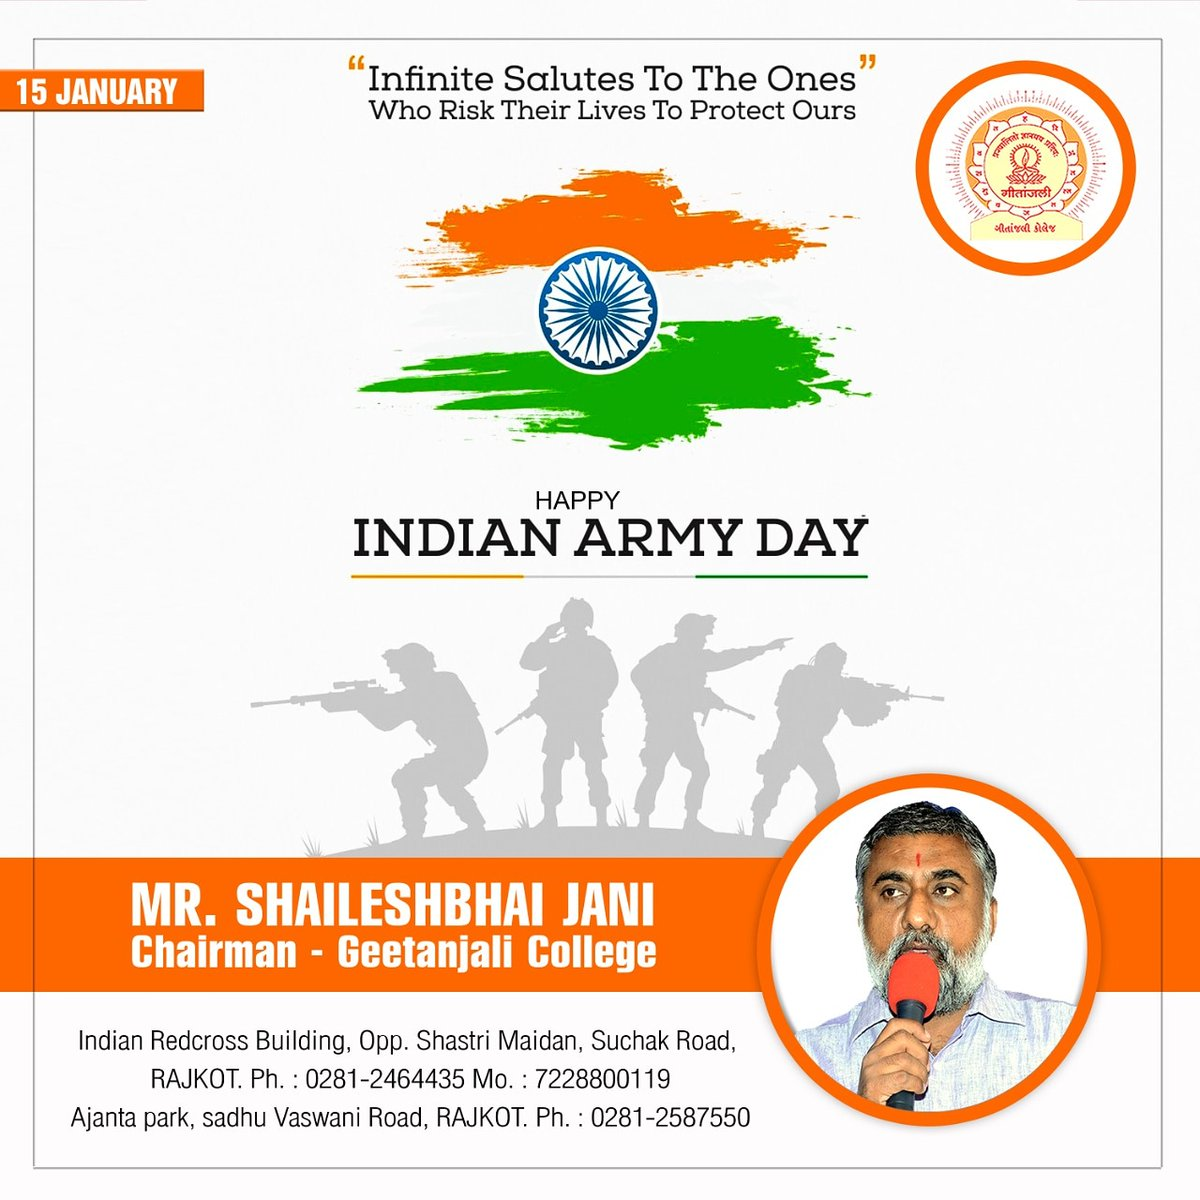 Happy Indian Army Day 🇮🇳  Infinite salutes to the ones who risk their lives to protect ours...  Geetanjali Group Of Colleges #indianarmy #indianarmyday #army #indianhero #15january #proudofnation #realheroes #salute #indian #jaihind #jaiho #proud